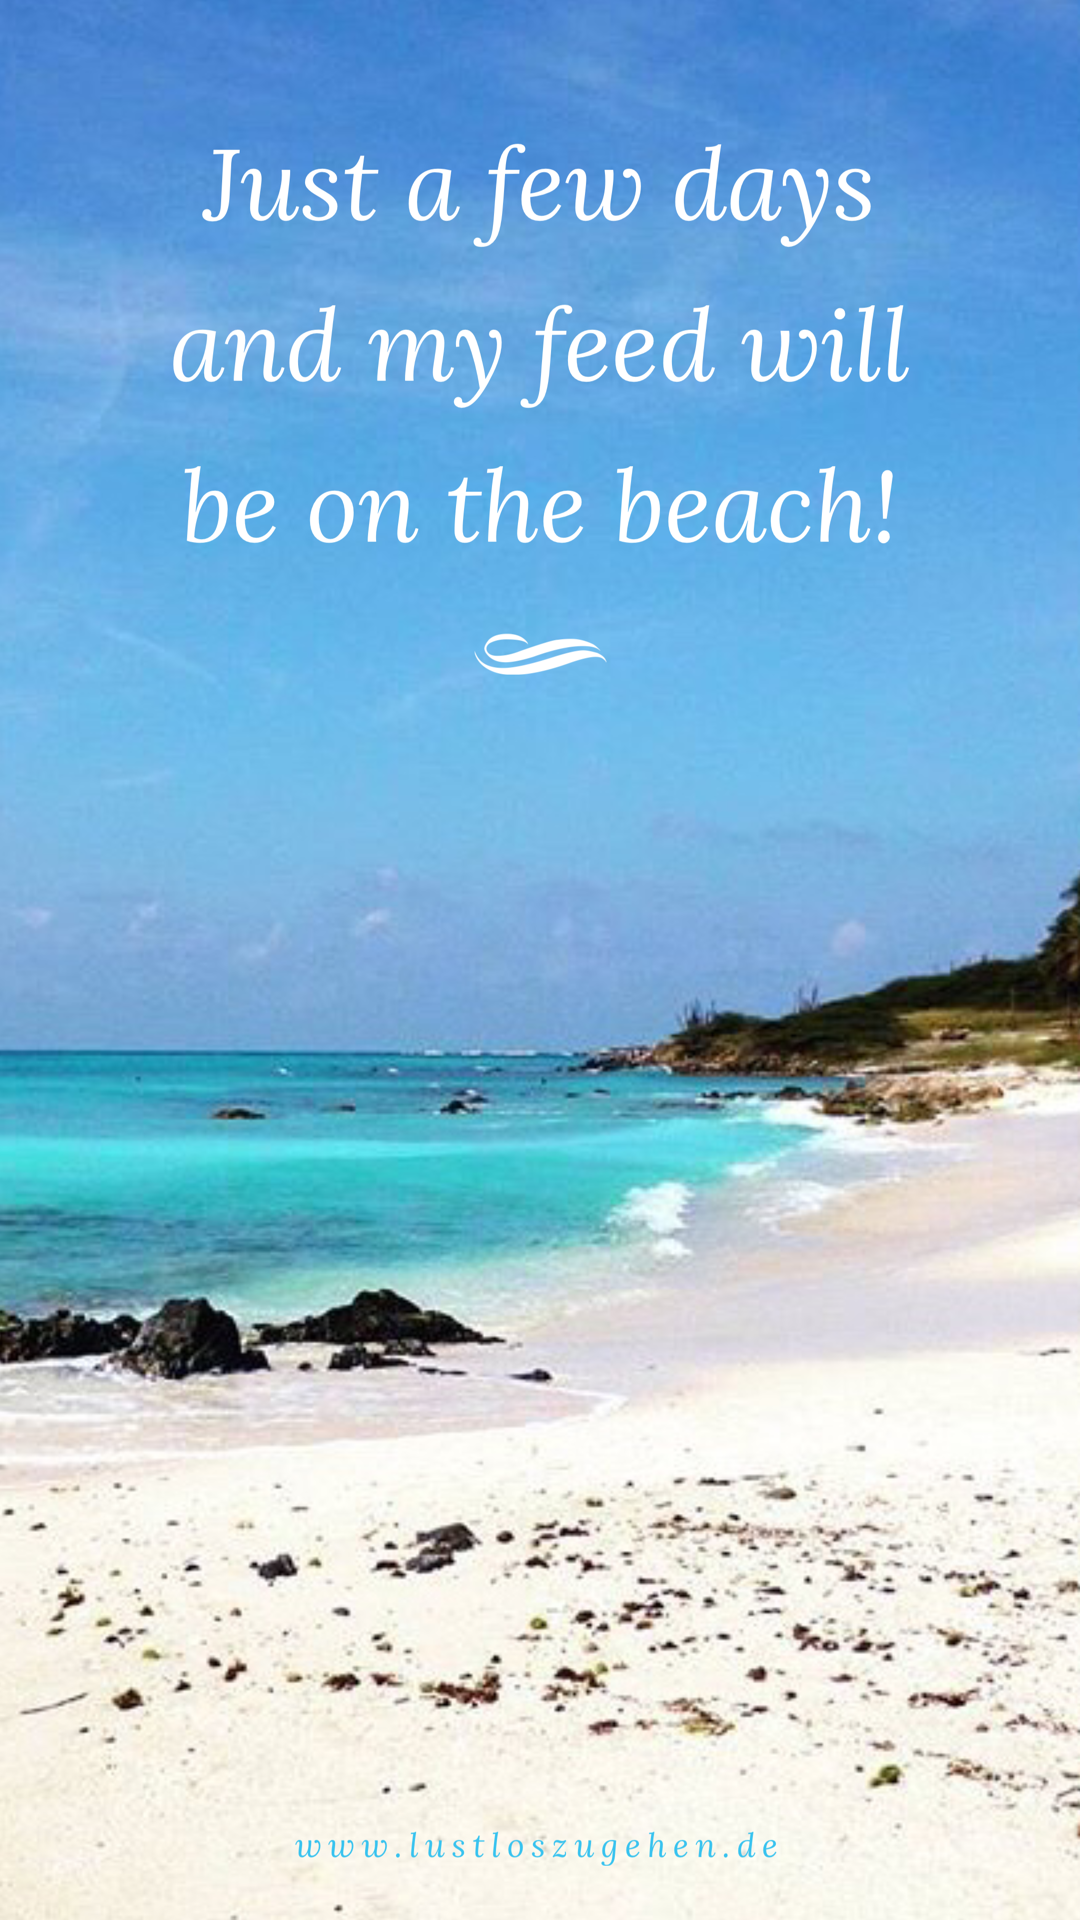 Only a few days and my feet will be on the beach! #quotes ...